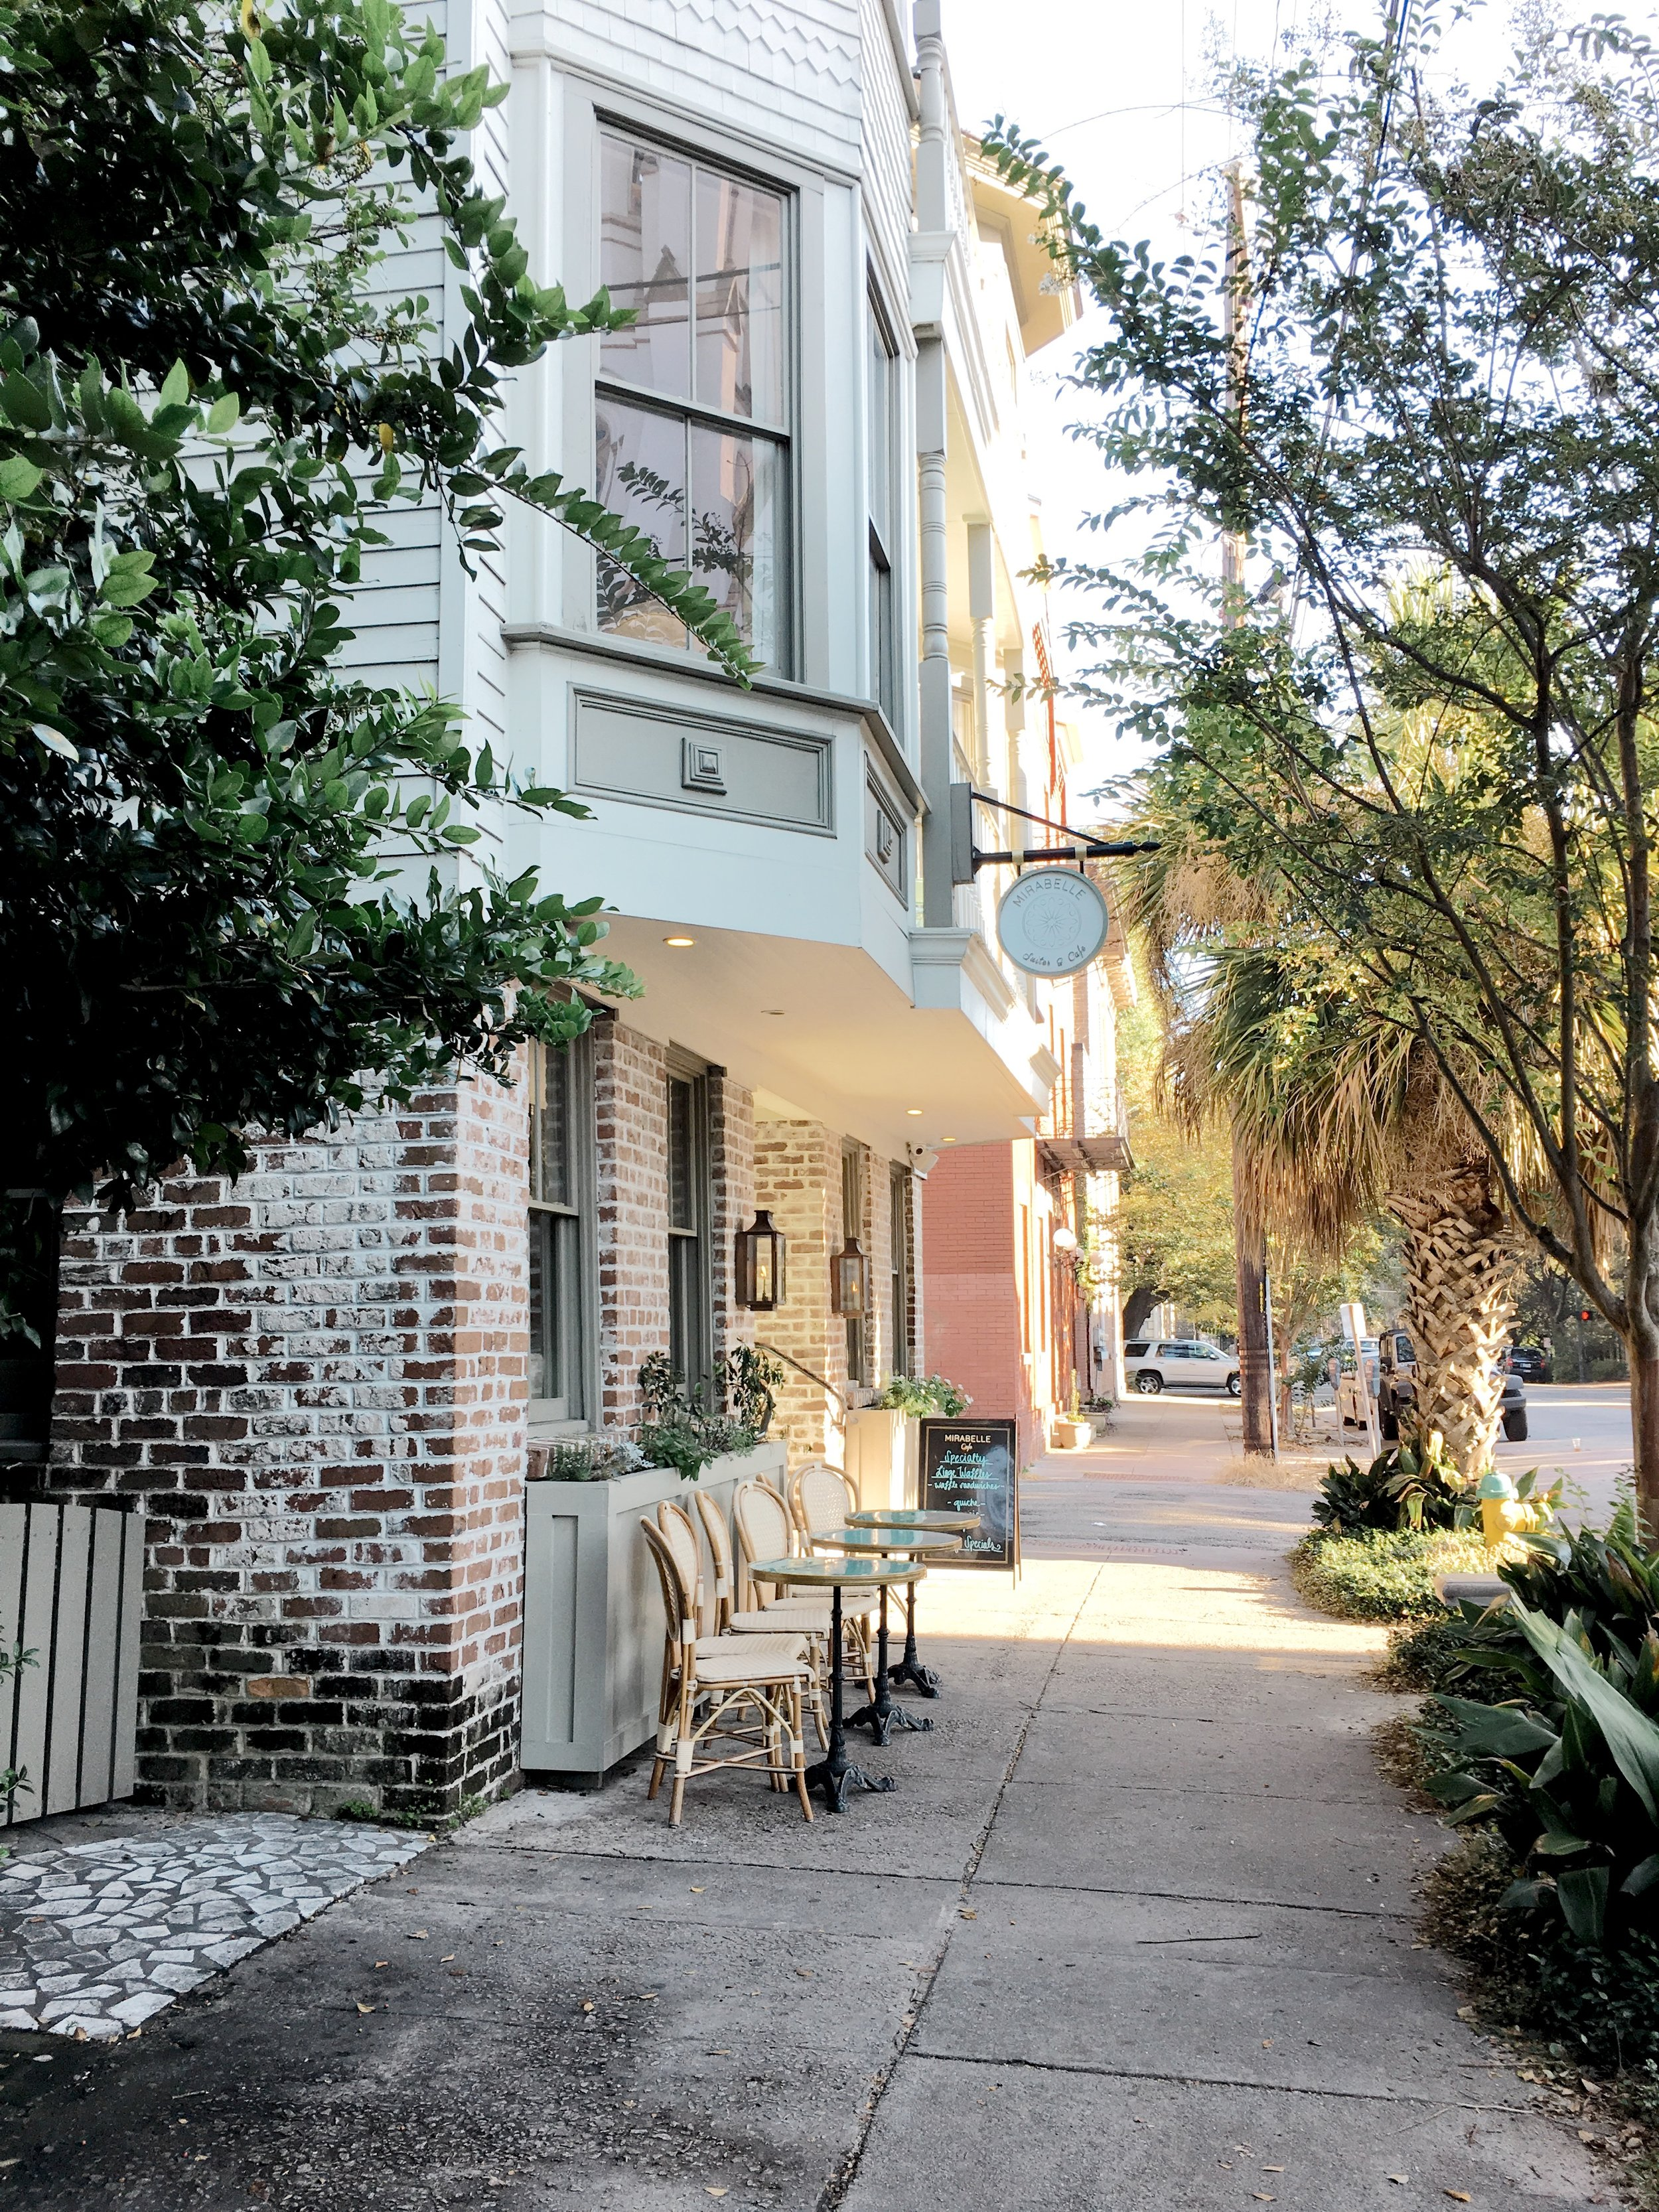 Mirabelle Cafe in Savannah, GA! A wonderful stop for our very last morning in the city before we both drove home.